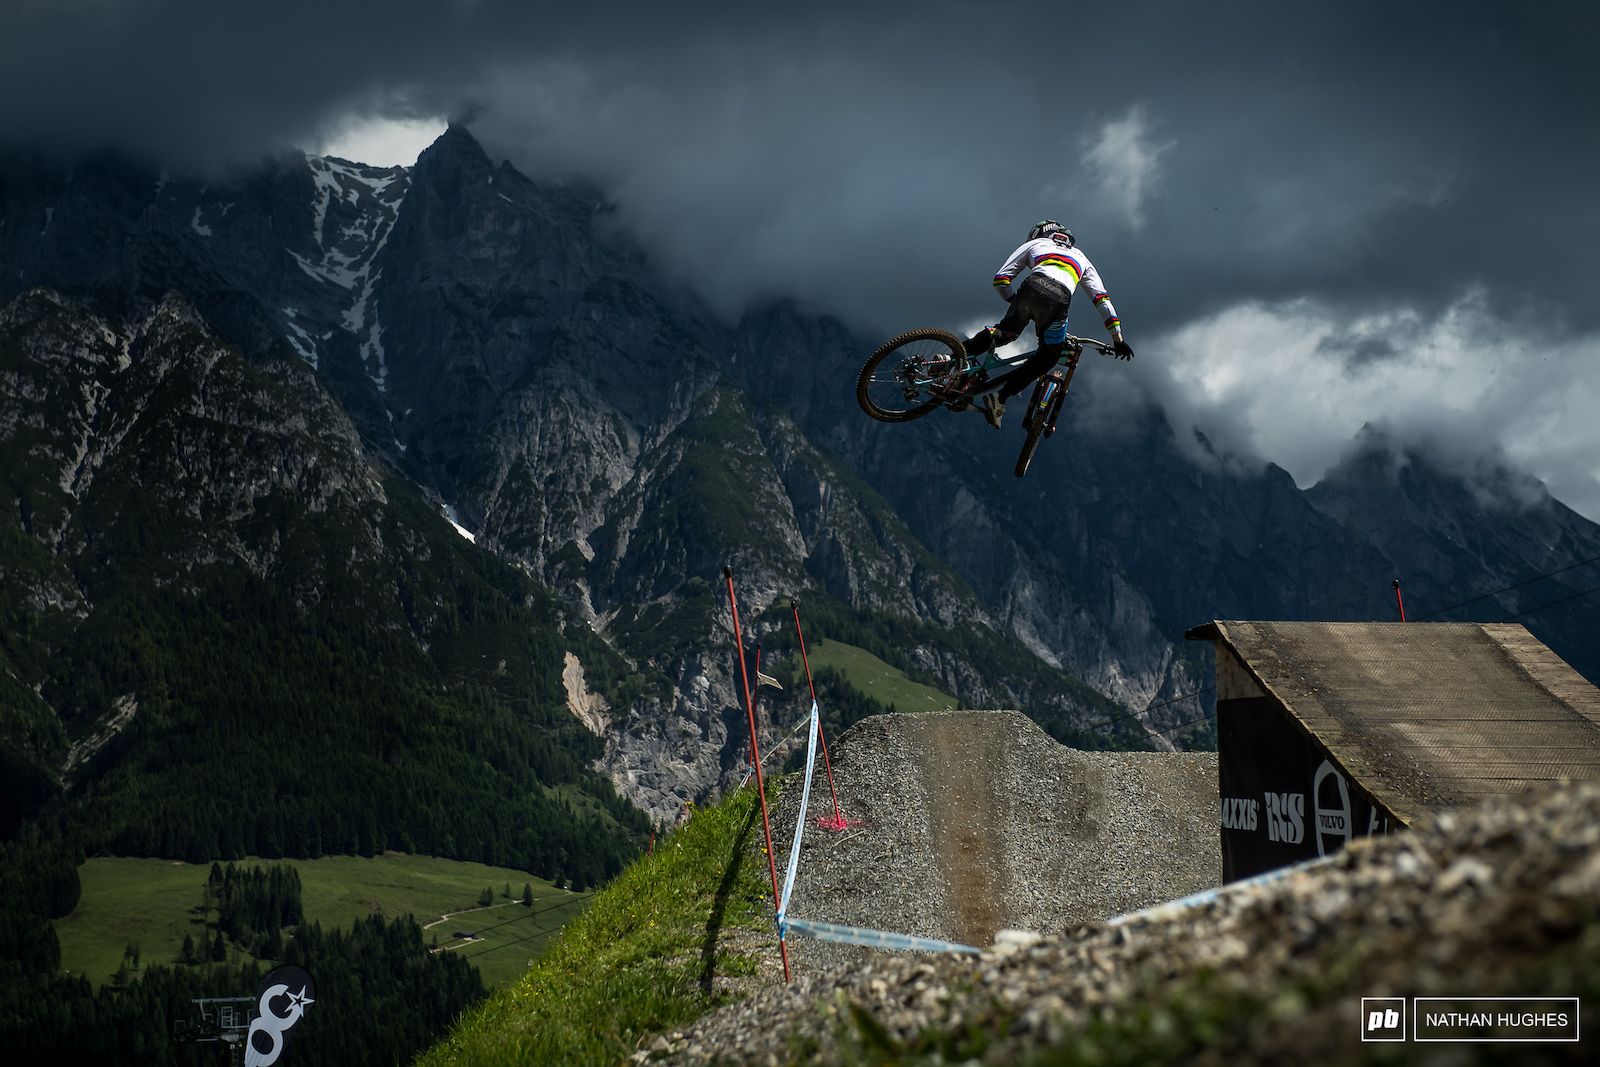 The World Champ just hanging in the ether at Leogang 2017.